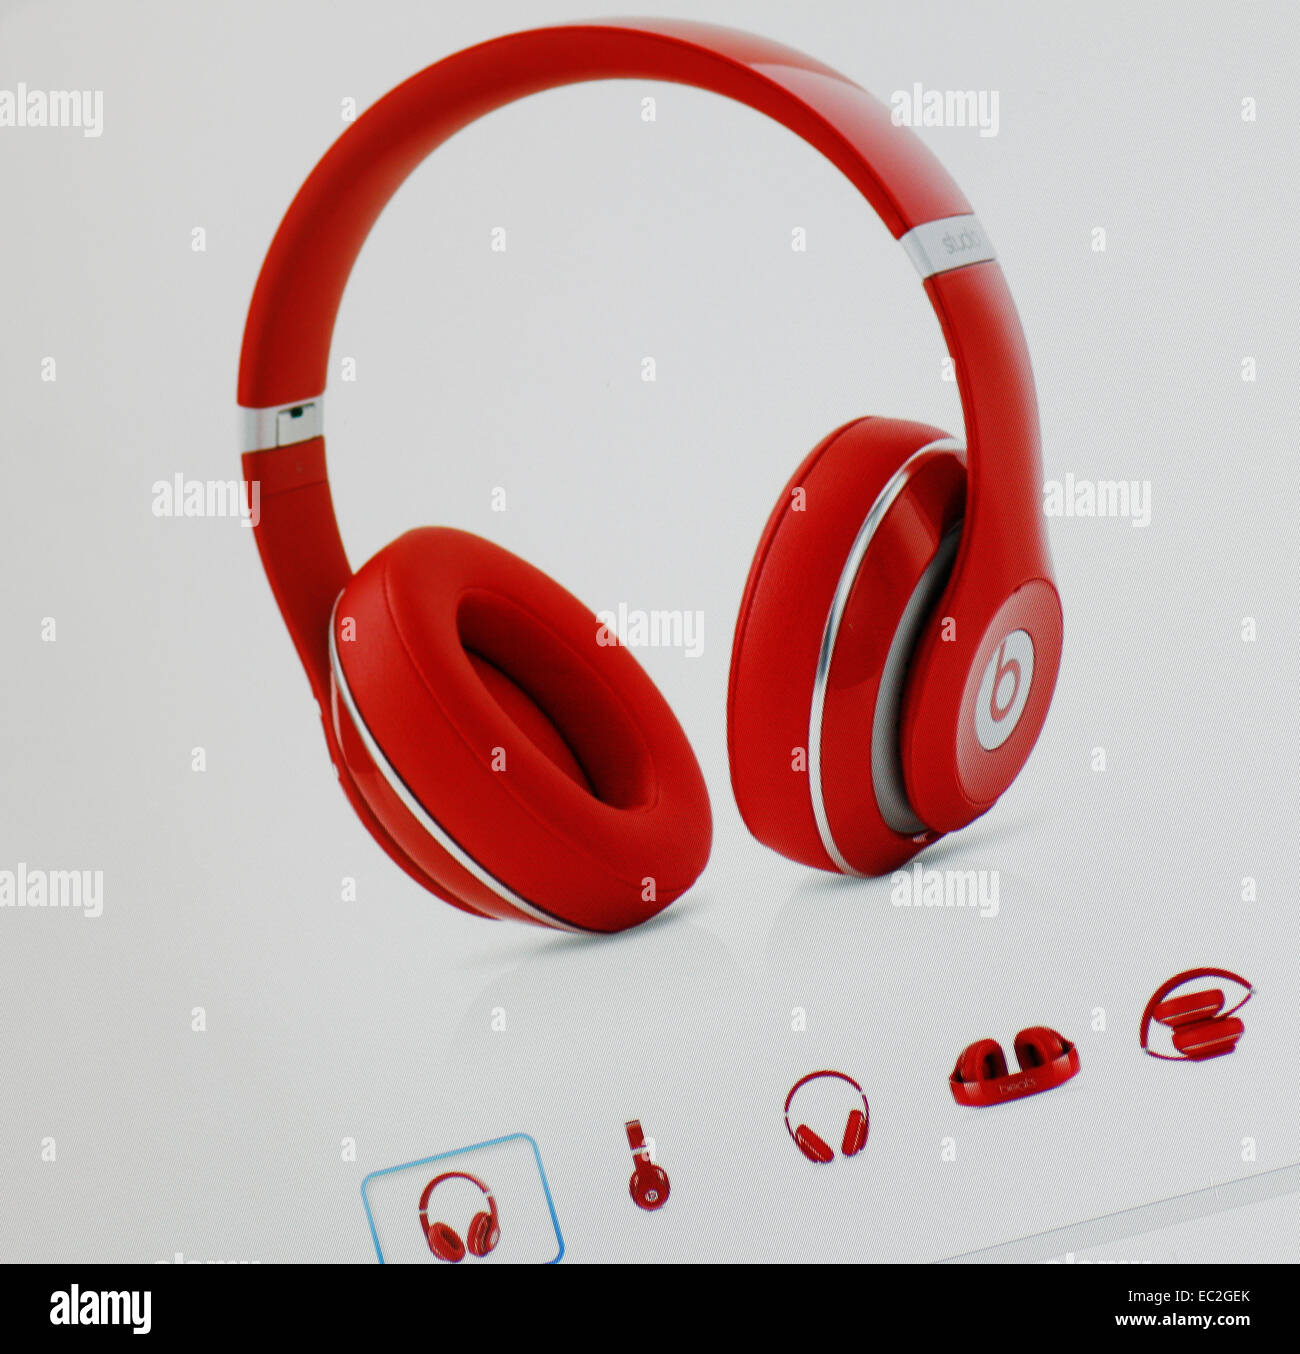 Casque Beats by Beats Electronics Photo Stock